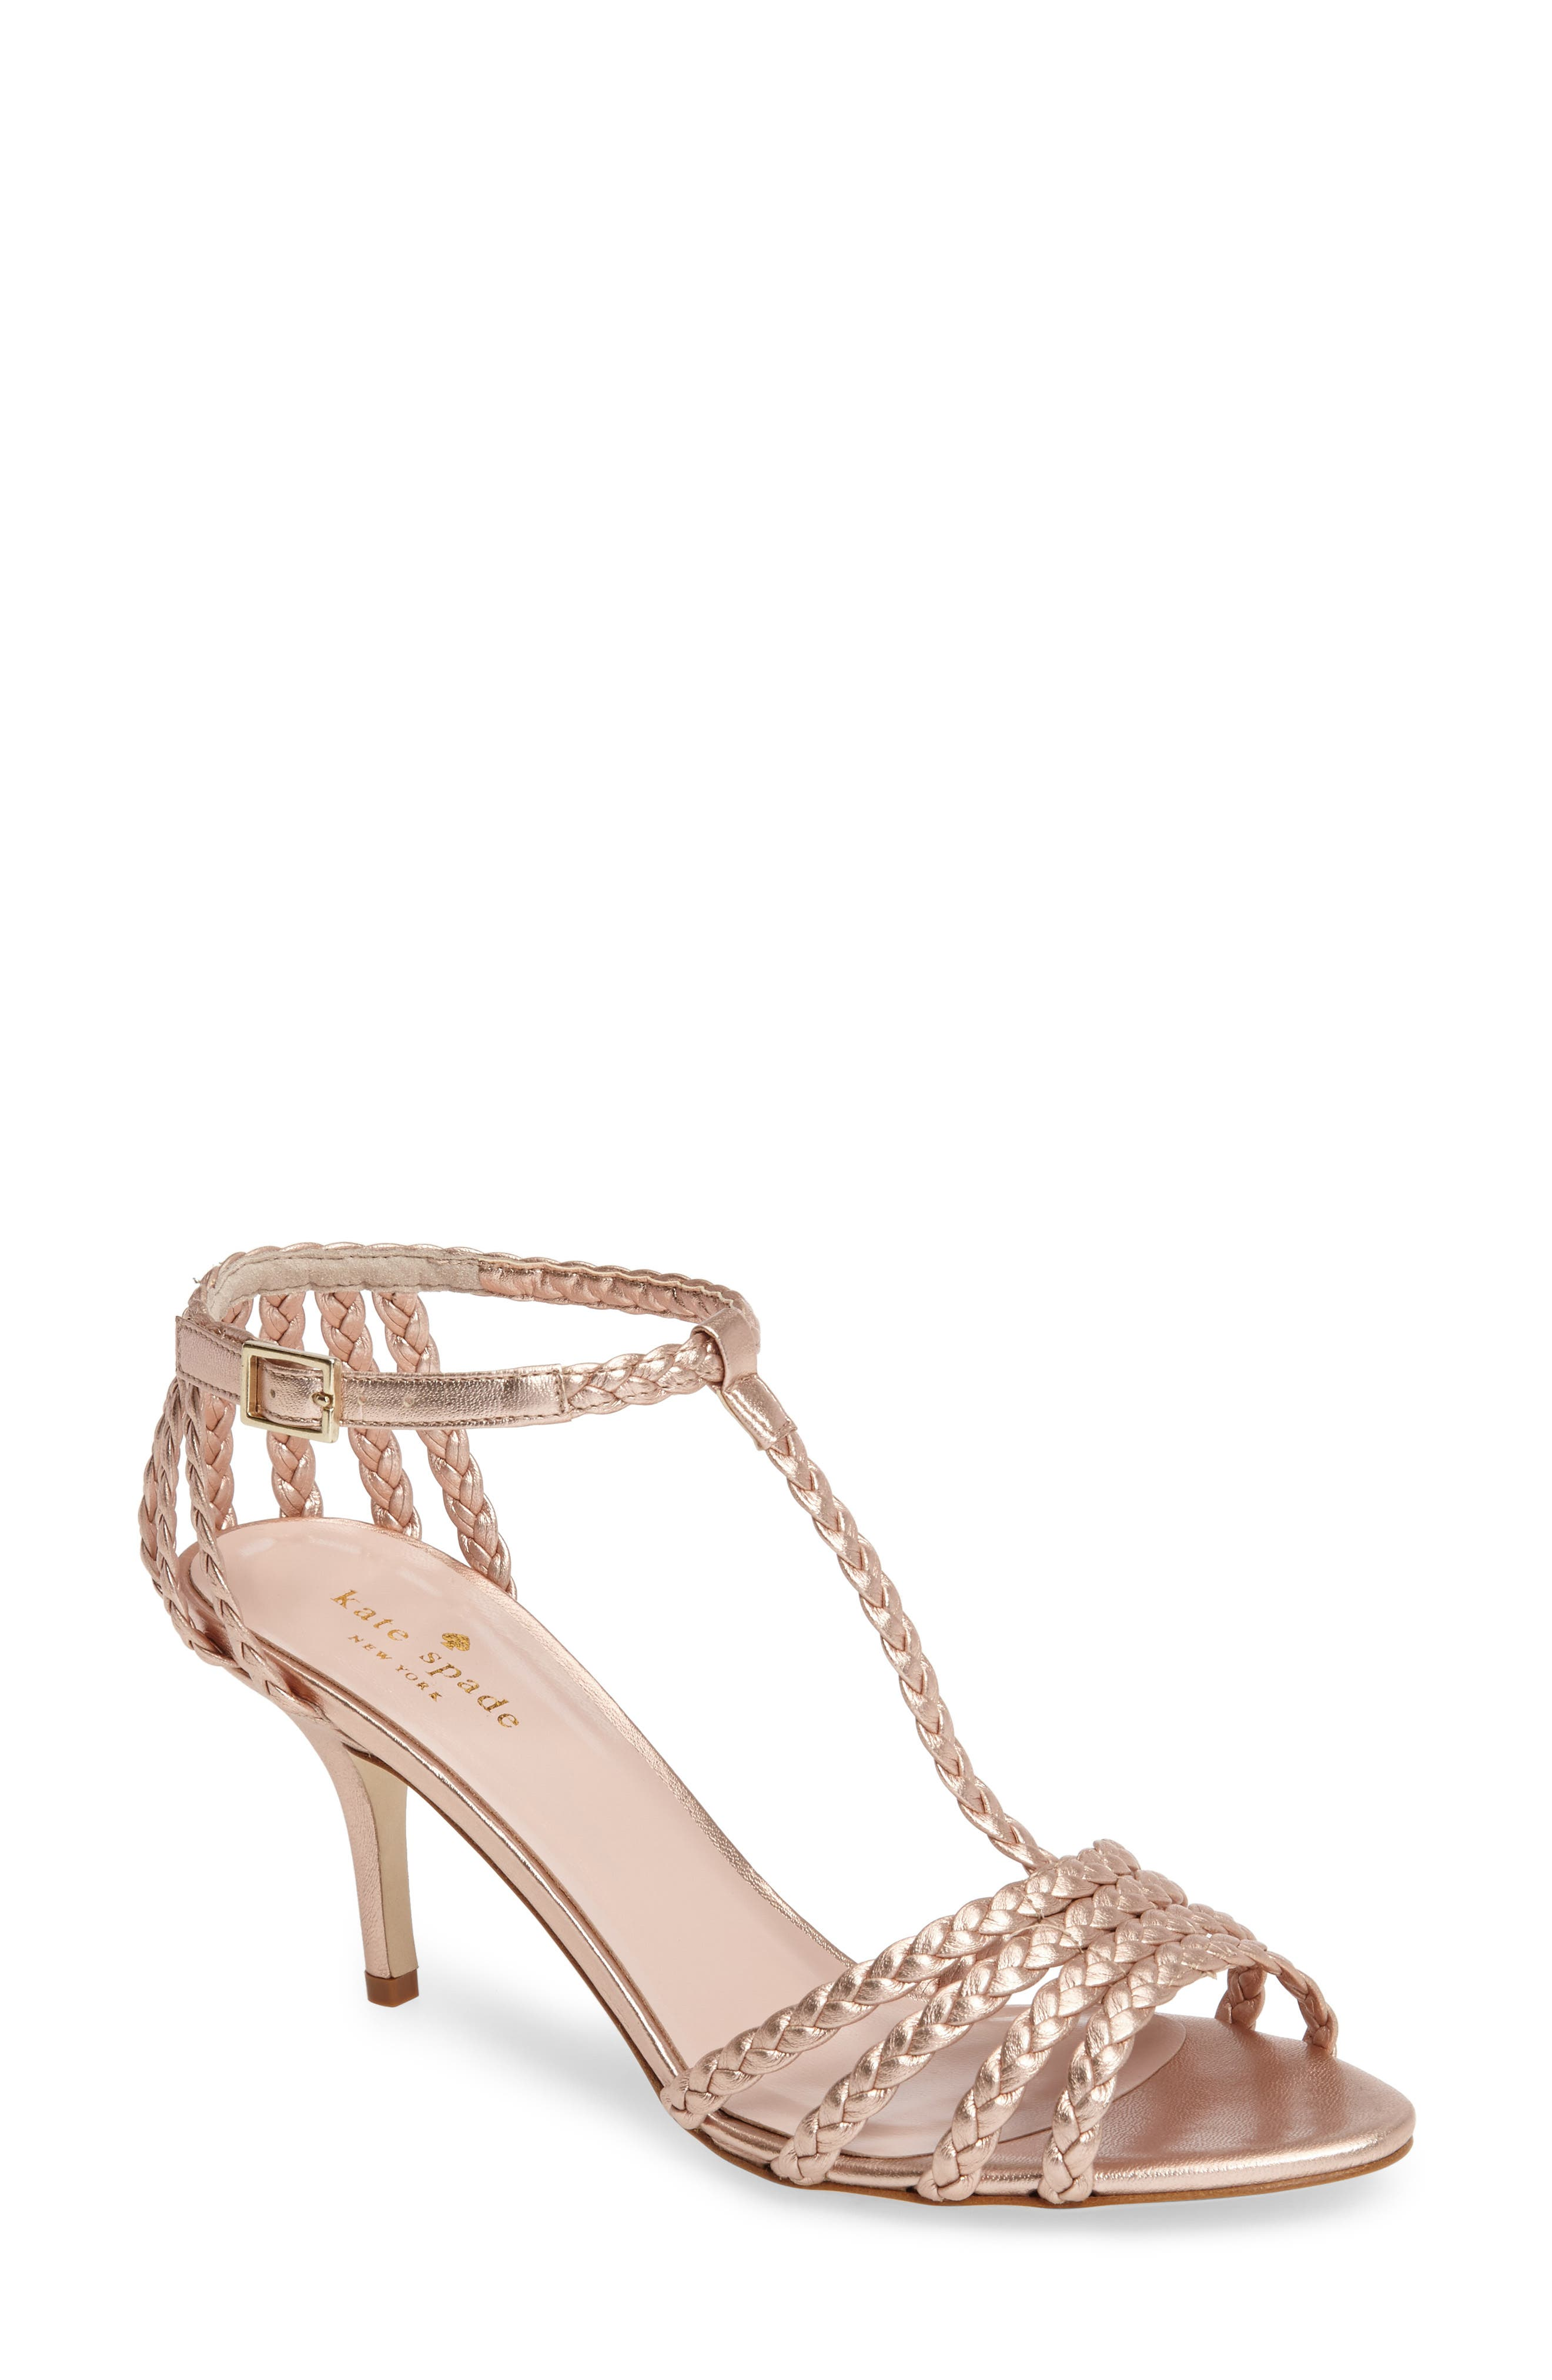 KATE SPADE NEW YORK sullivan strappy sandal